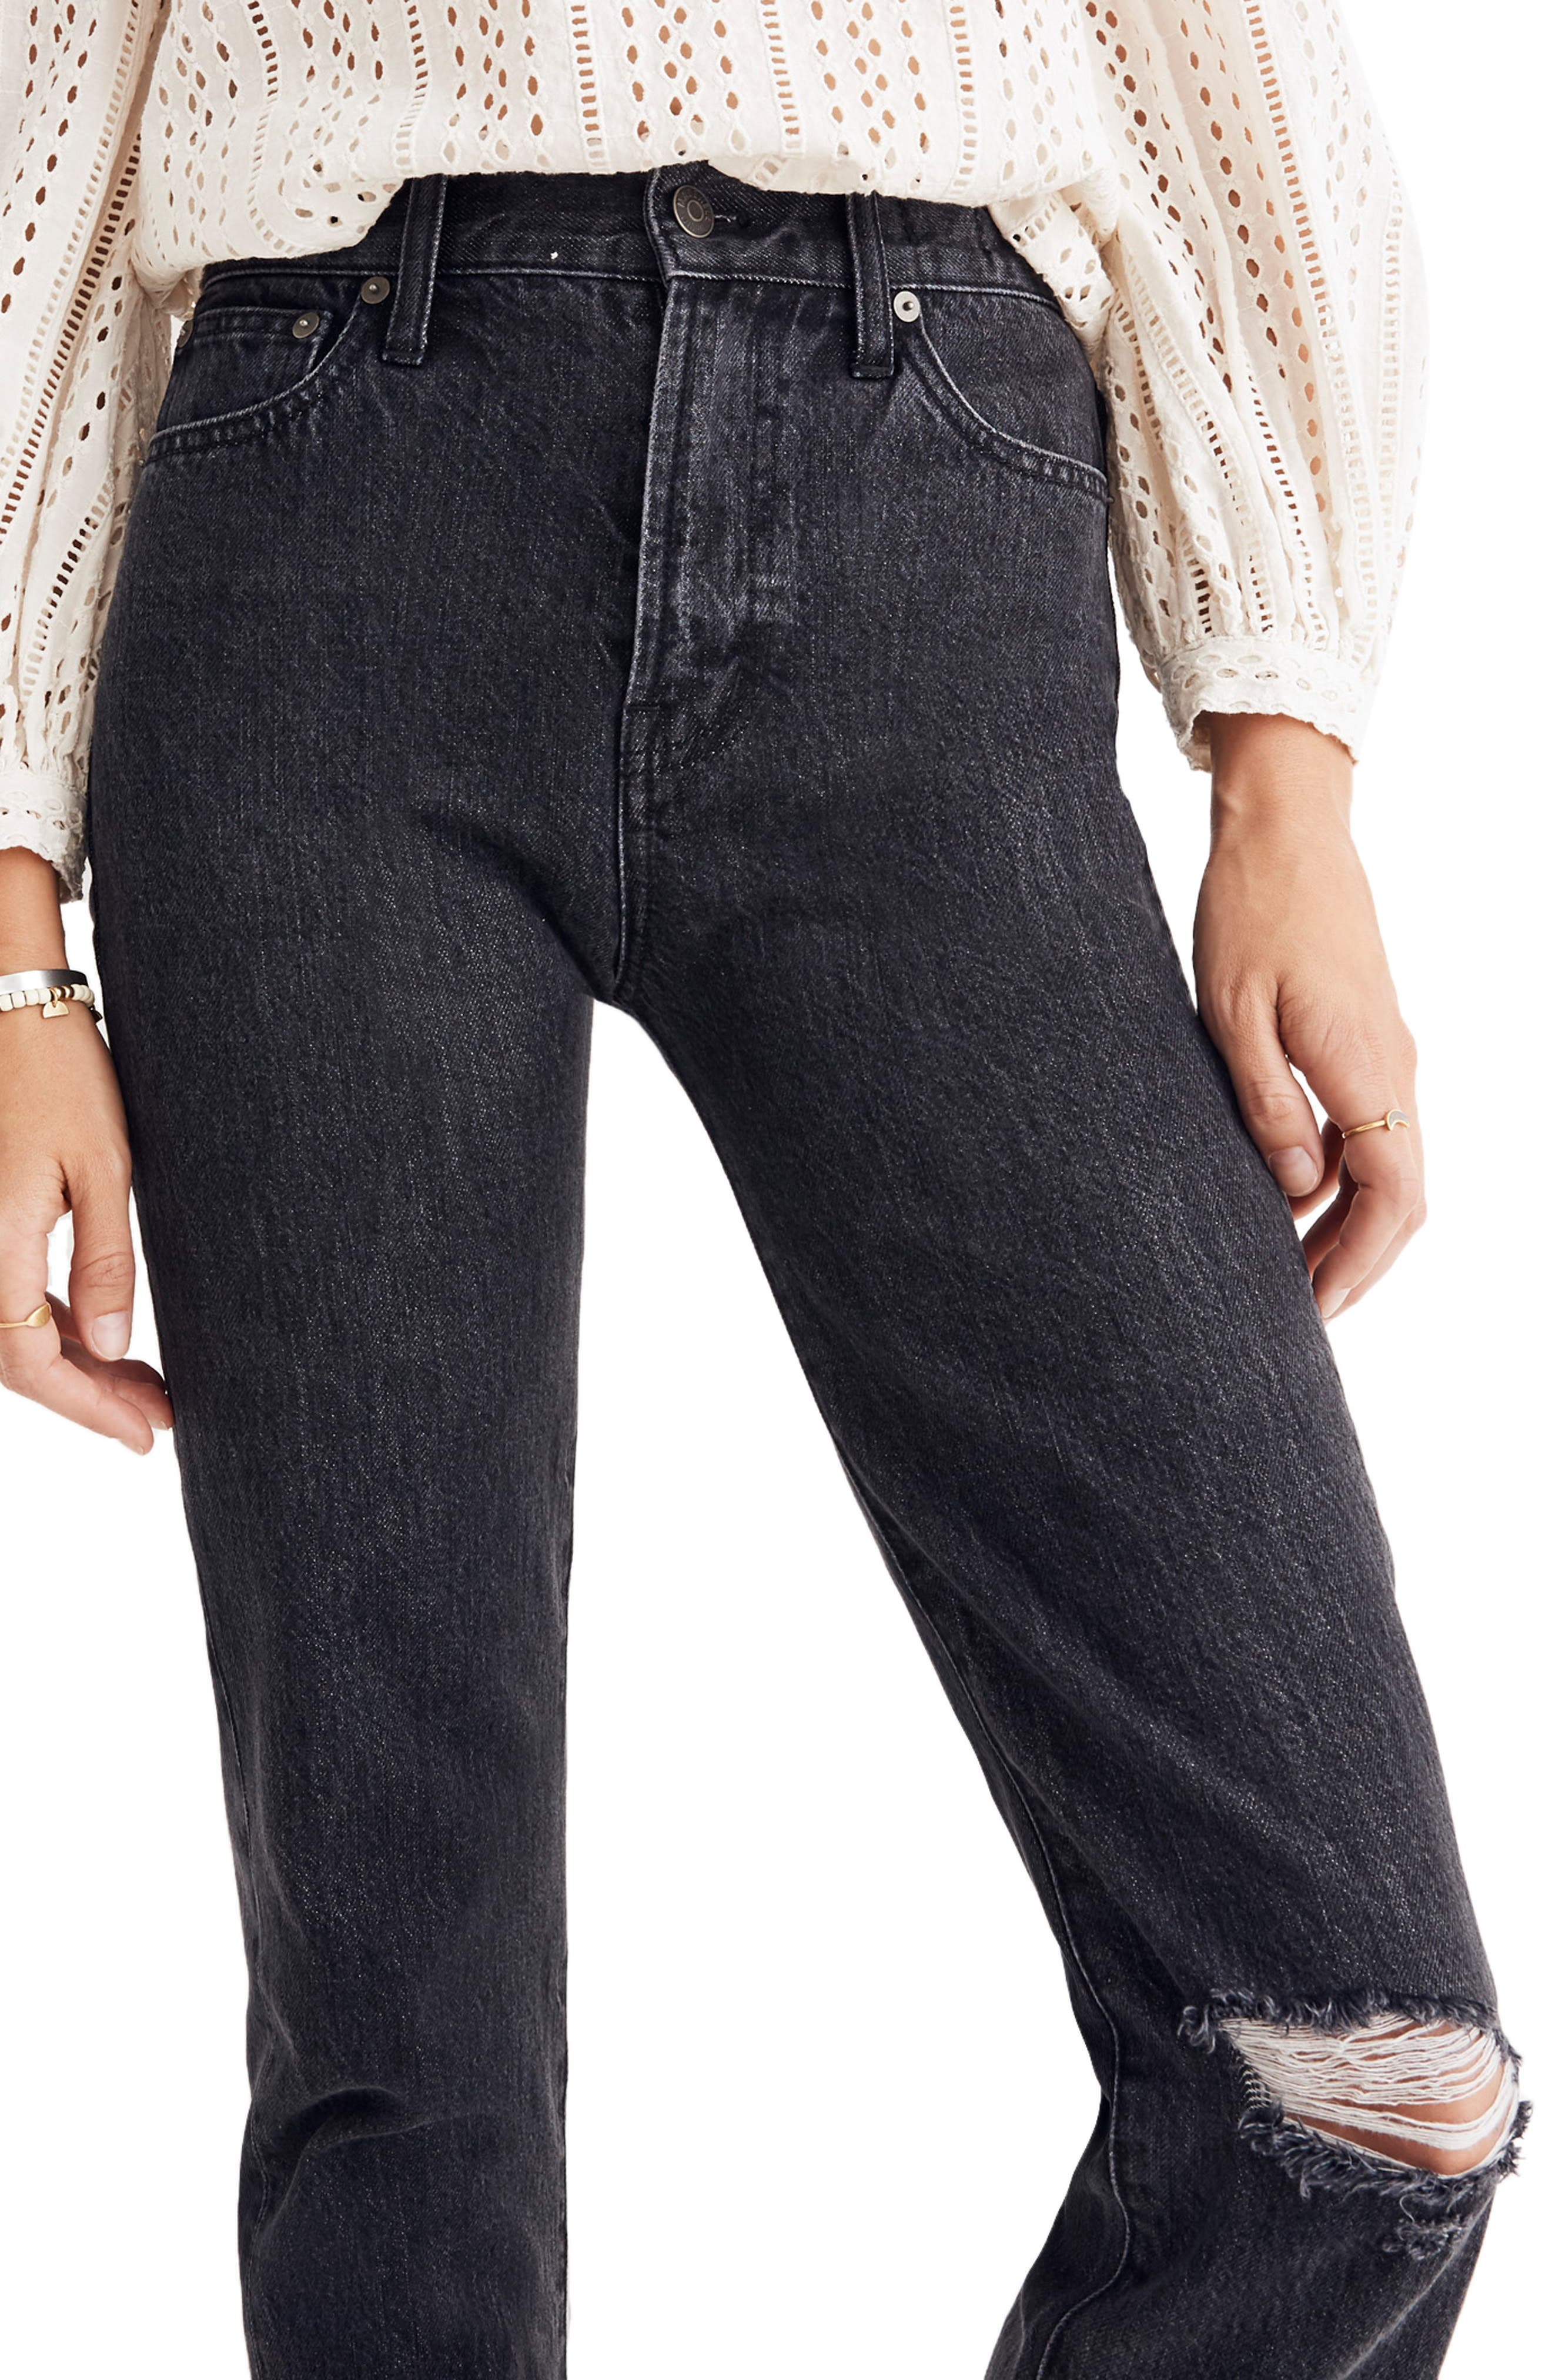 The Perfect Vintage Ripped Knee Jeans